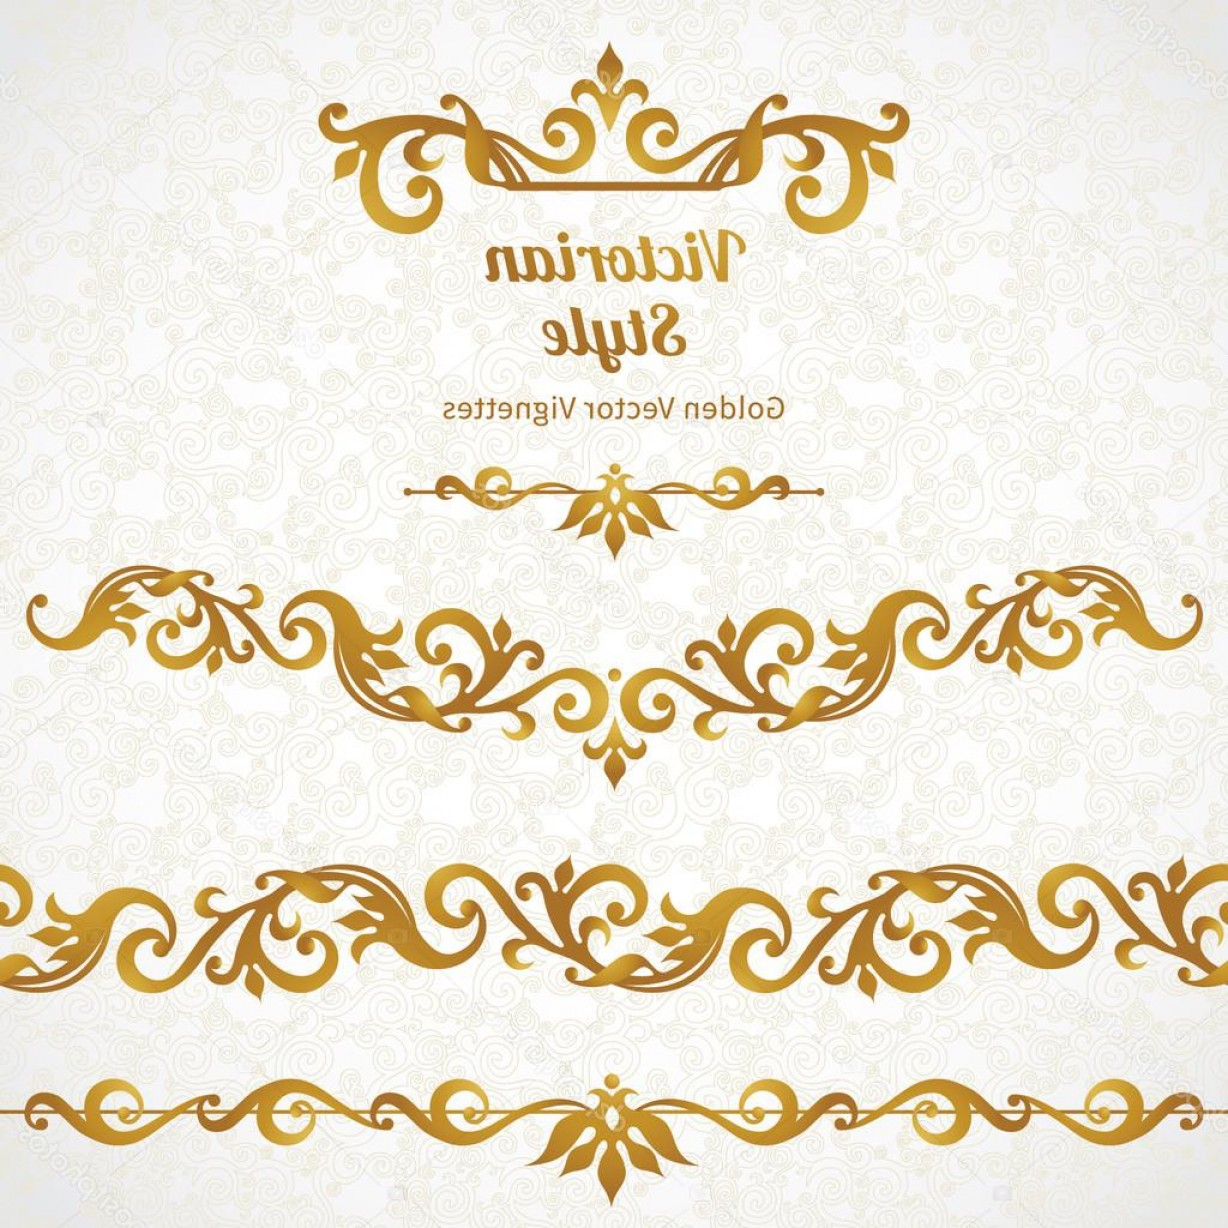 Gold Ornate Borders Vector: Stock Illustration Ornate Borders And Vignettes